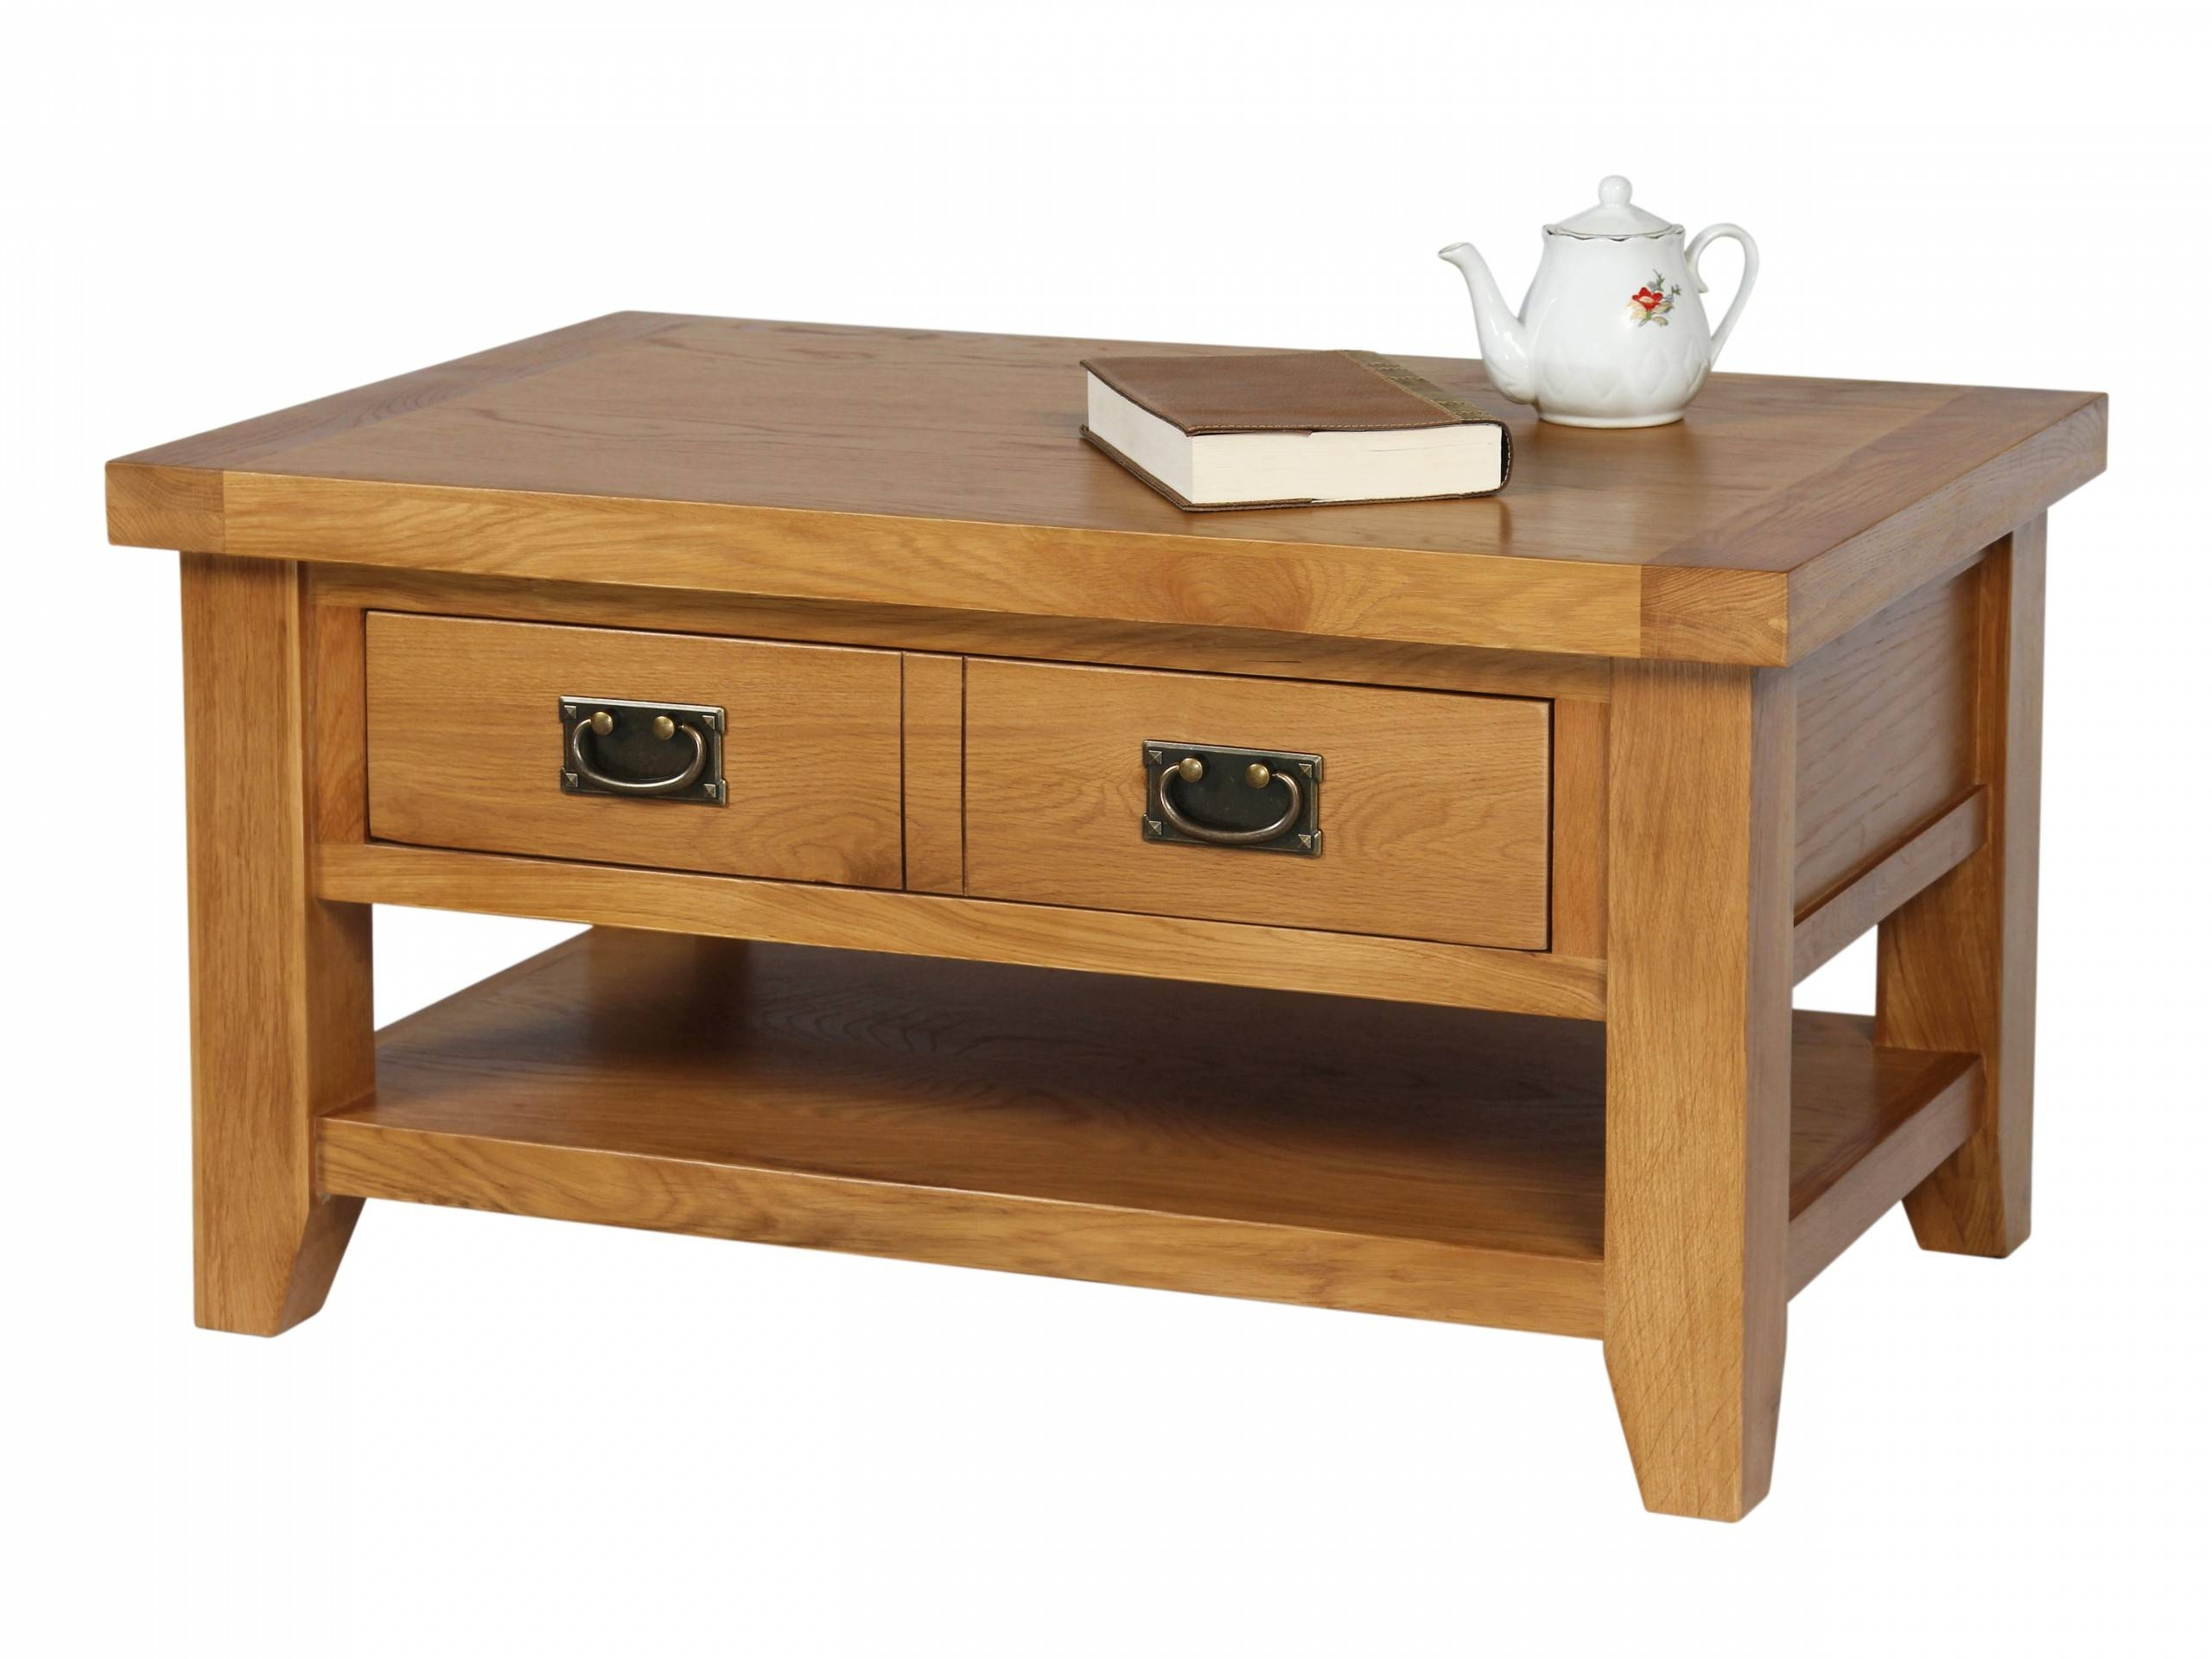 Country Oak Coffee Table With Drawer & Shelf with Oak Coffee Table With Drawers (Image 3 of 15)